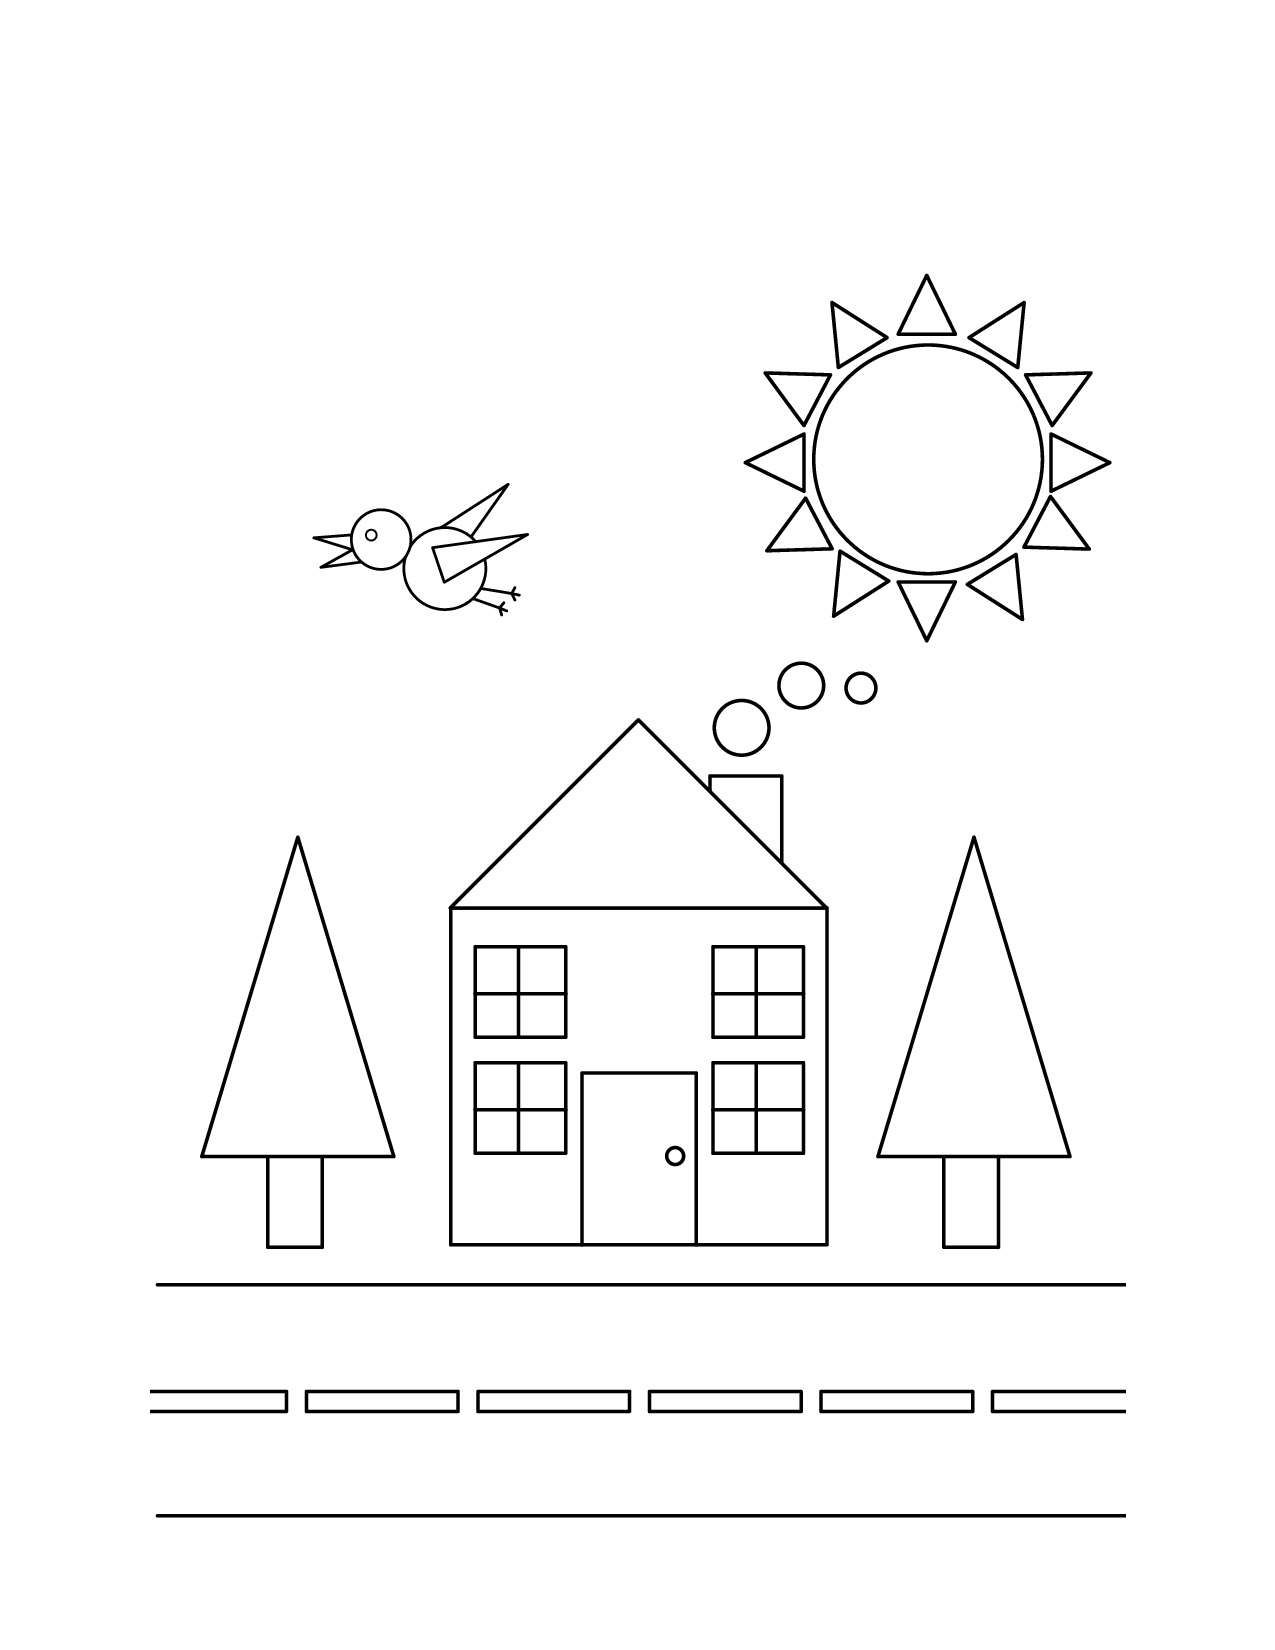 coloring sheet with shapes shapes coloring download shapes coloring for free 2019 coloring sheet with shapes